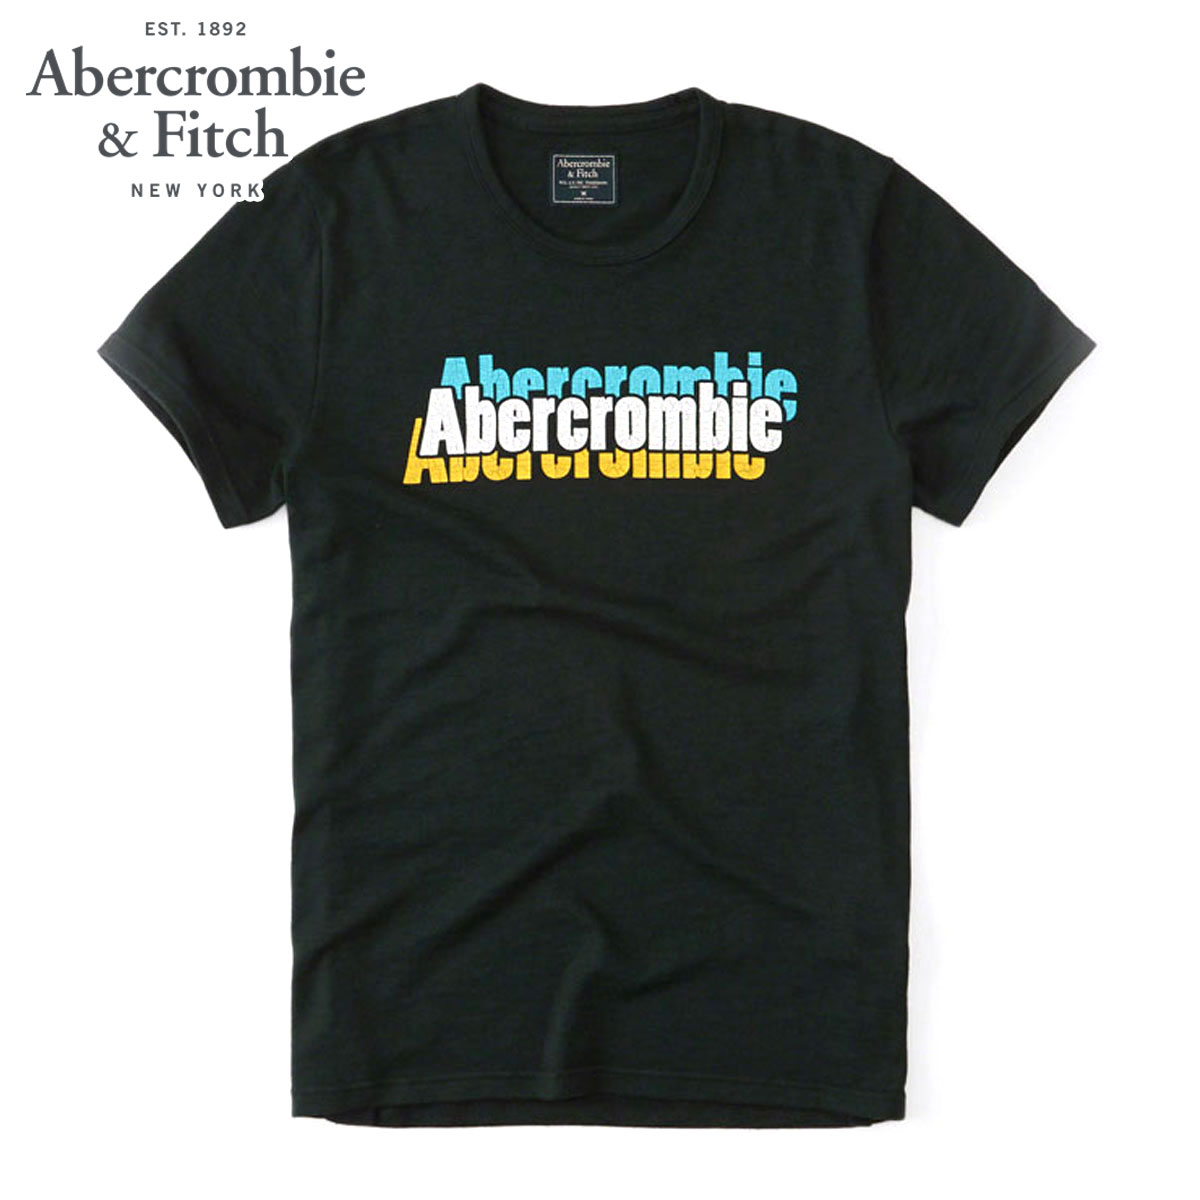 693139f3 ABBA black Abercrombie & Fitch regular article men short sleeves T-shirt  PRINT LOGO TEE 123-238-2097-300 D00S20